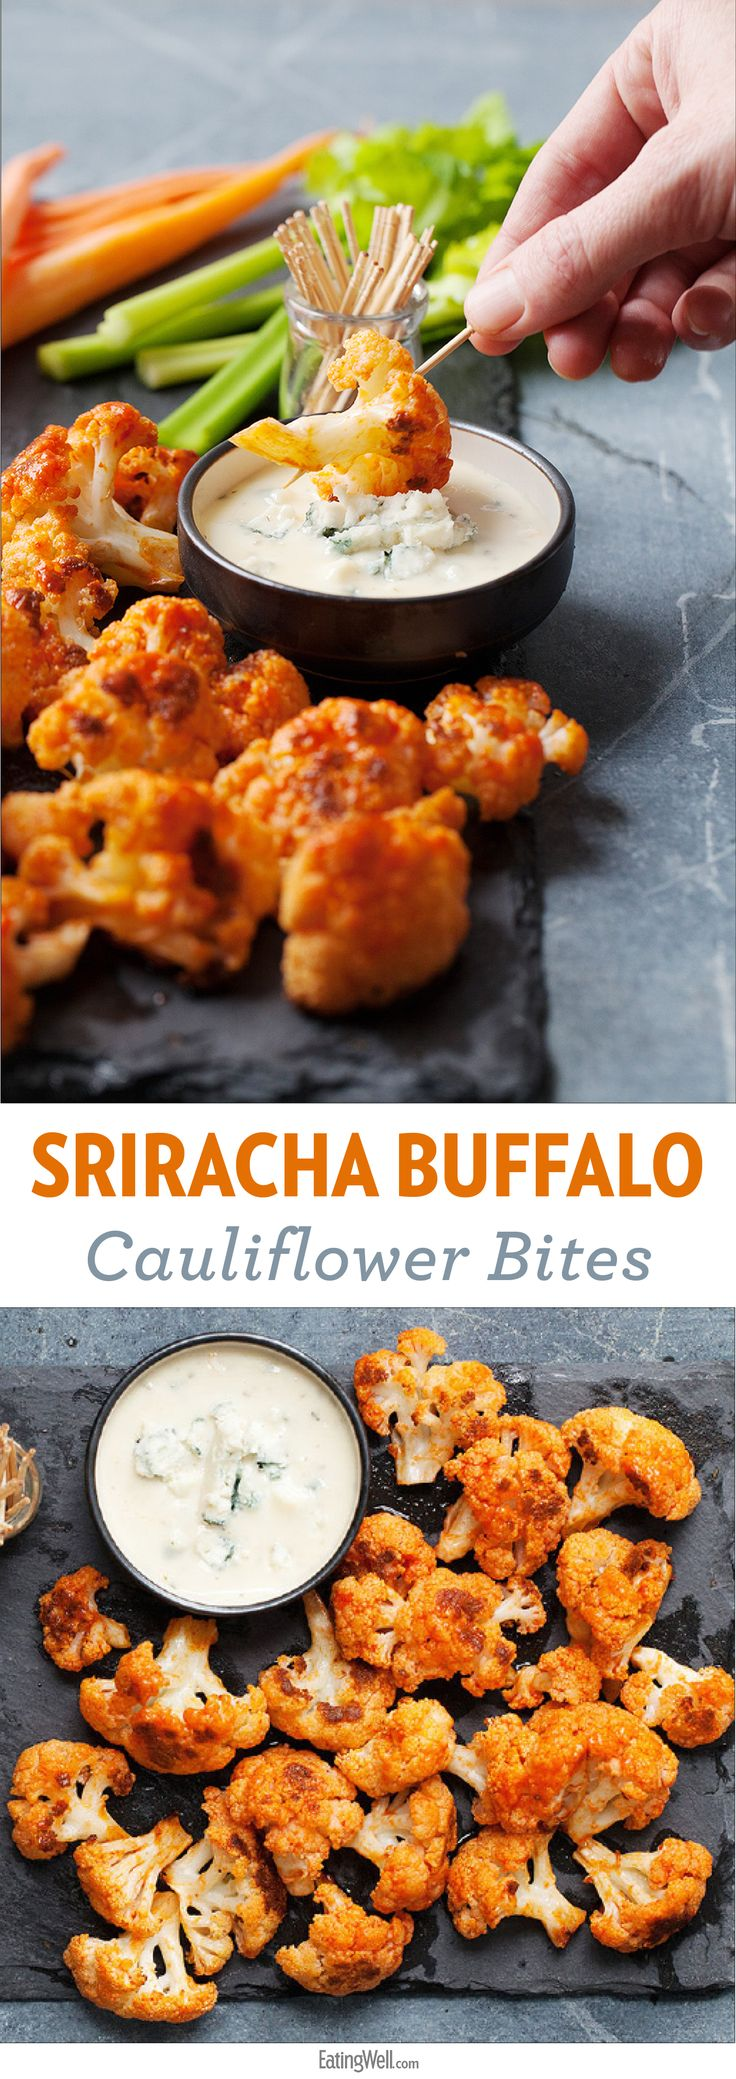 Sriracha Buffalo Cauliflower Bites | This recipe for spicy Buffalo cauliflower bites is a great vegetarian alternative to Buffalo wings. Roasted cauliflower stands in for chicken and provides more fiber and fewer calories. Serve this easy appetizer with carrot sticks, celery and your favorite ranch or blue cheese dressing.